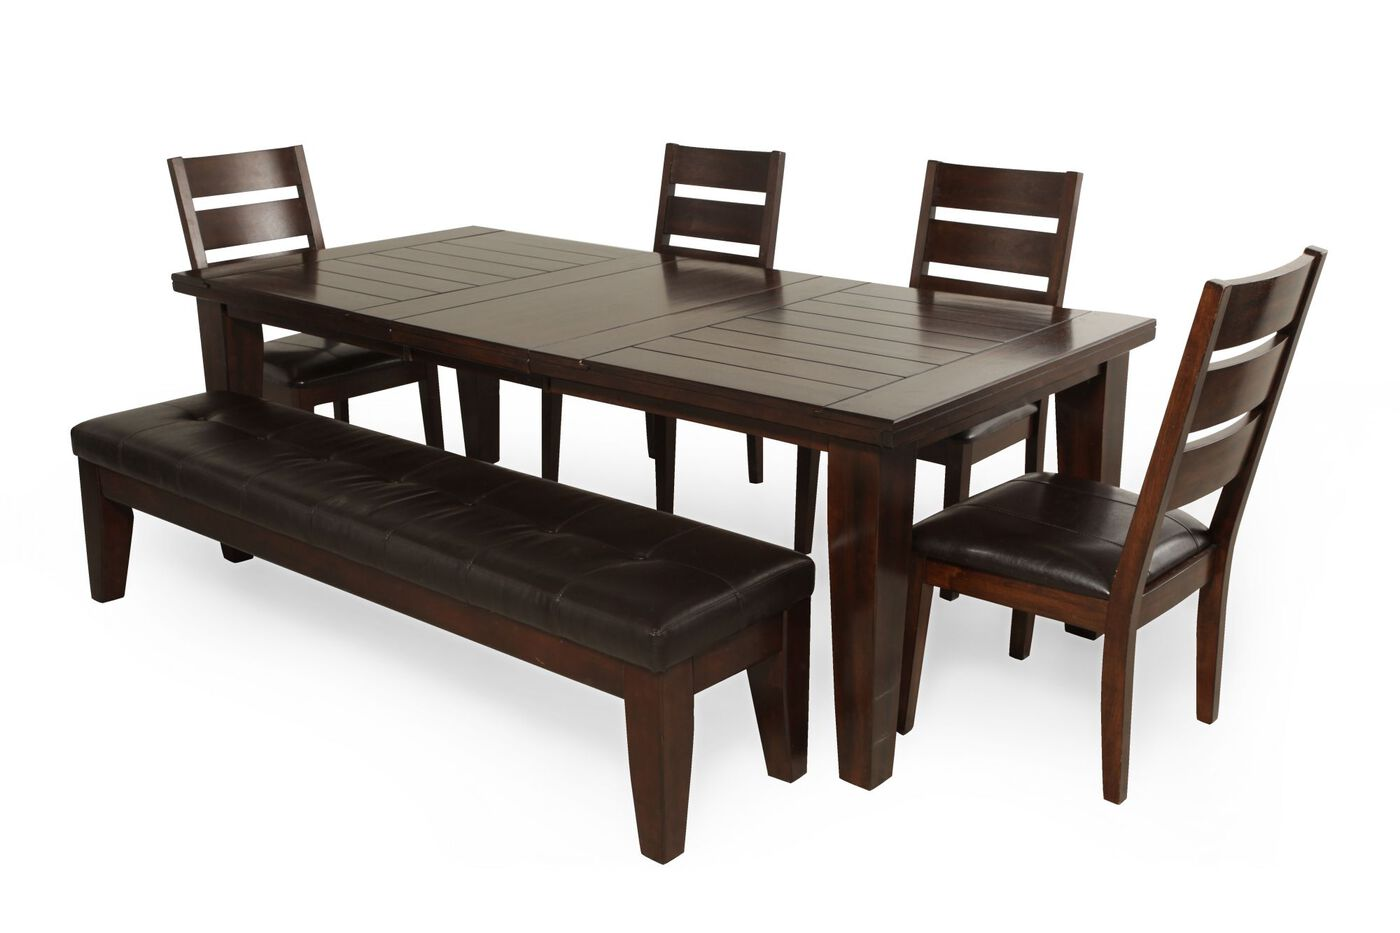 Mathis Brothers Dining Room Sets Dining Room Sets Kitchen Furniture Mathis Brothers New